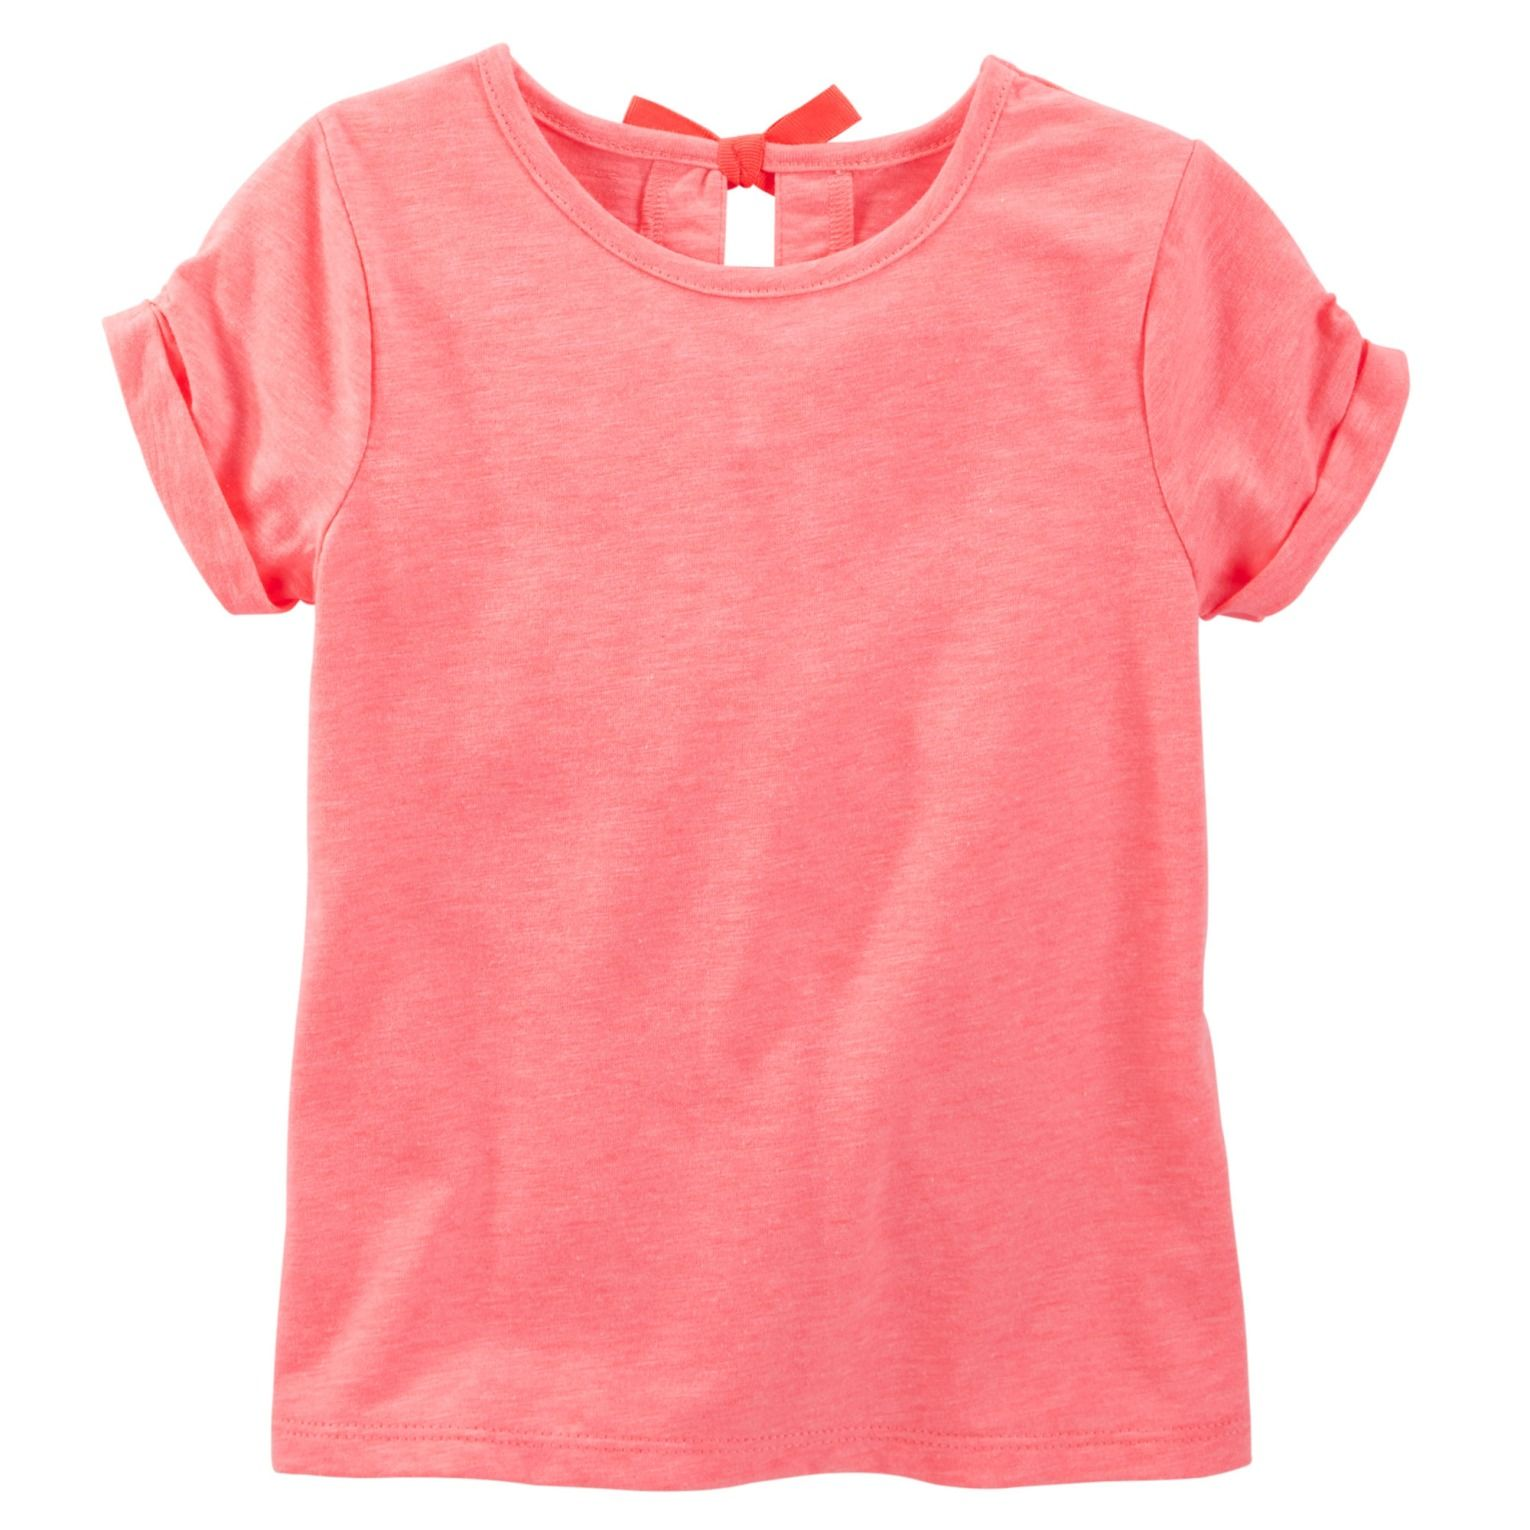 Featuring A Keyhole With A Bow At The Back, This Soft Tee